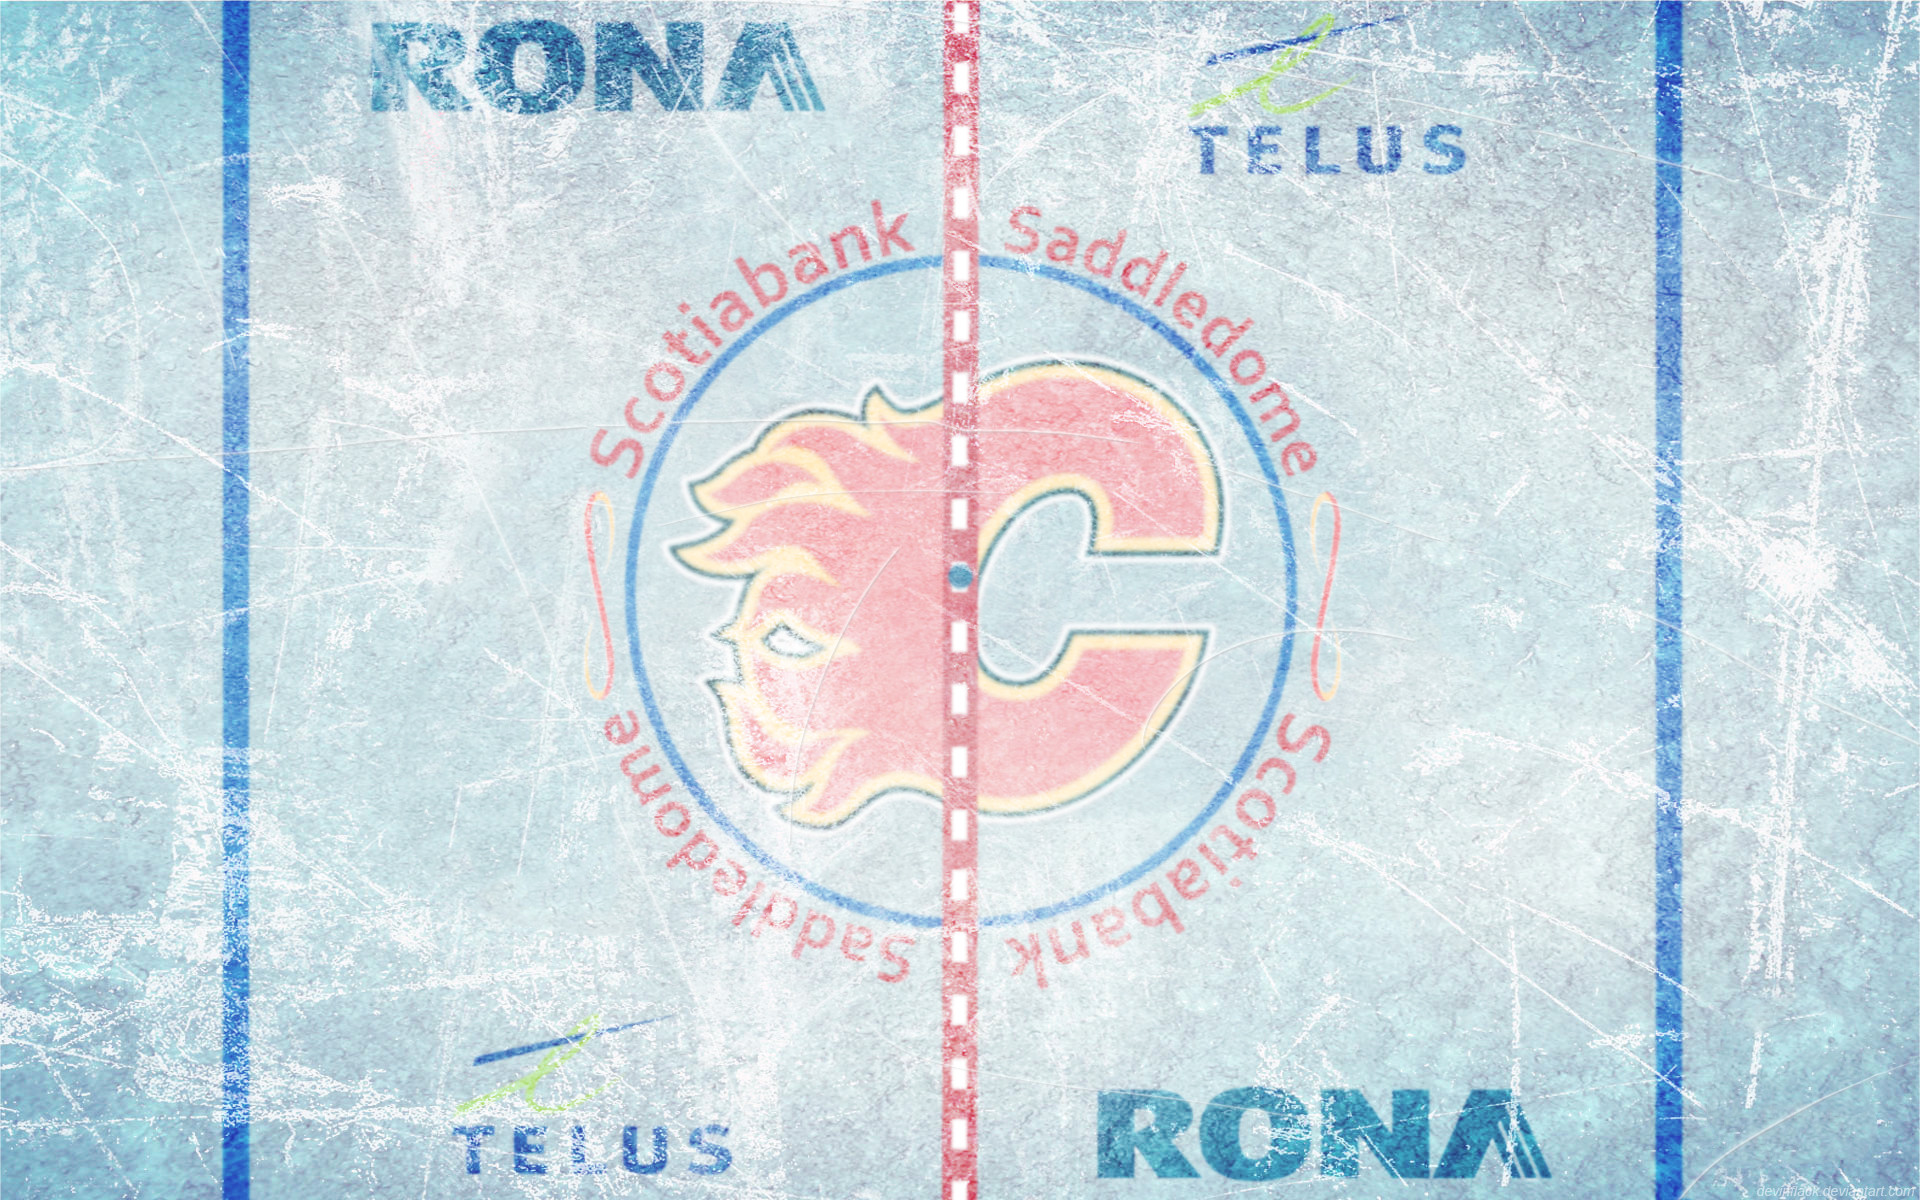 Res: 1920x1200, Scotiabank Saddledome Ice Wallpaper by DevinFlack Scotiabank Saddledome Ice  Wallpaper by DevinFlack